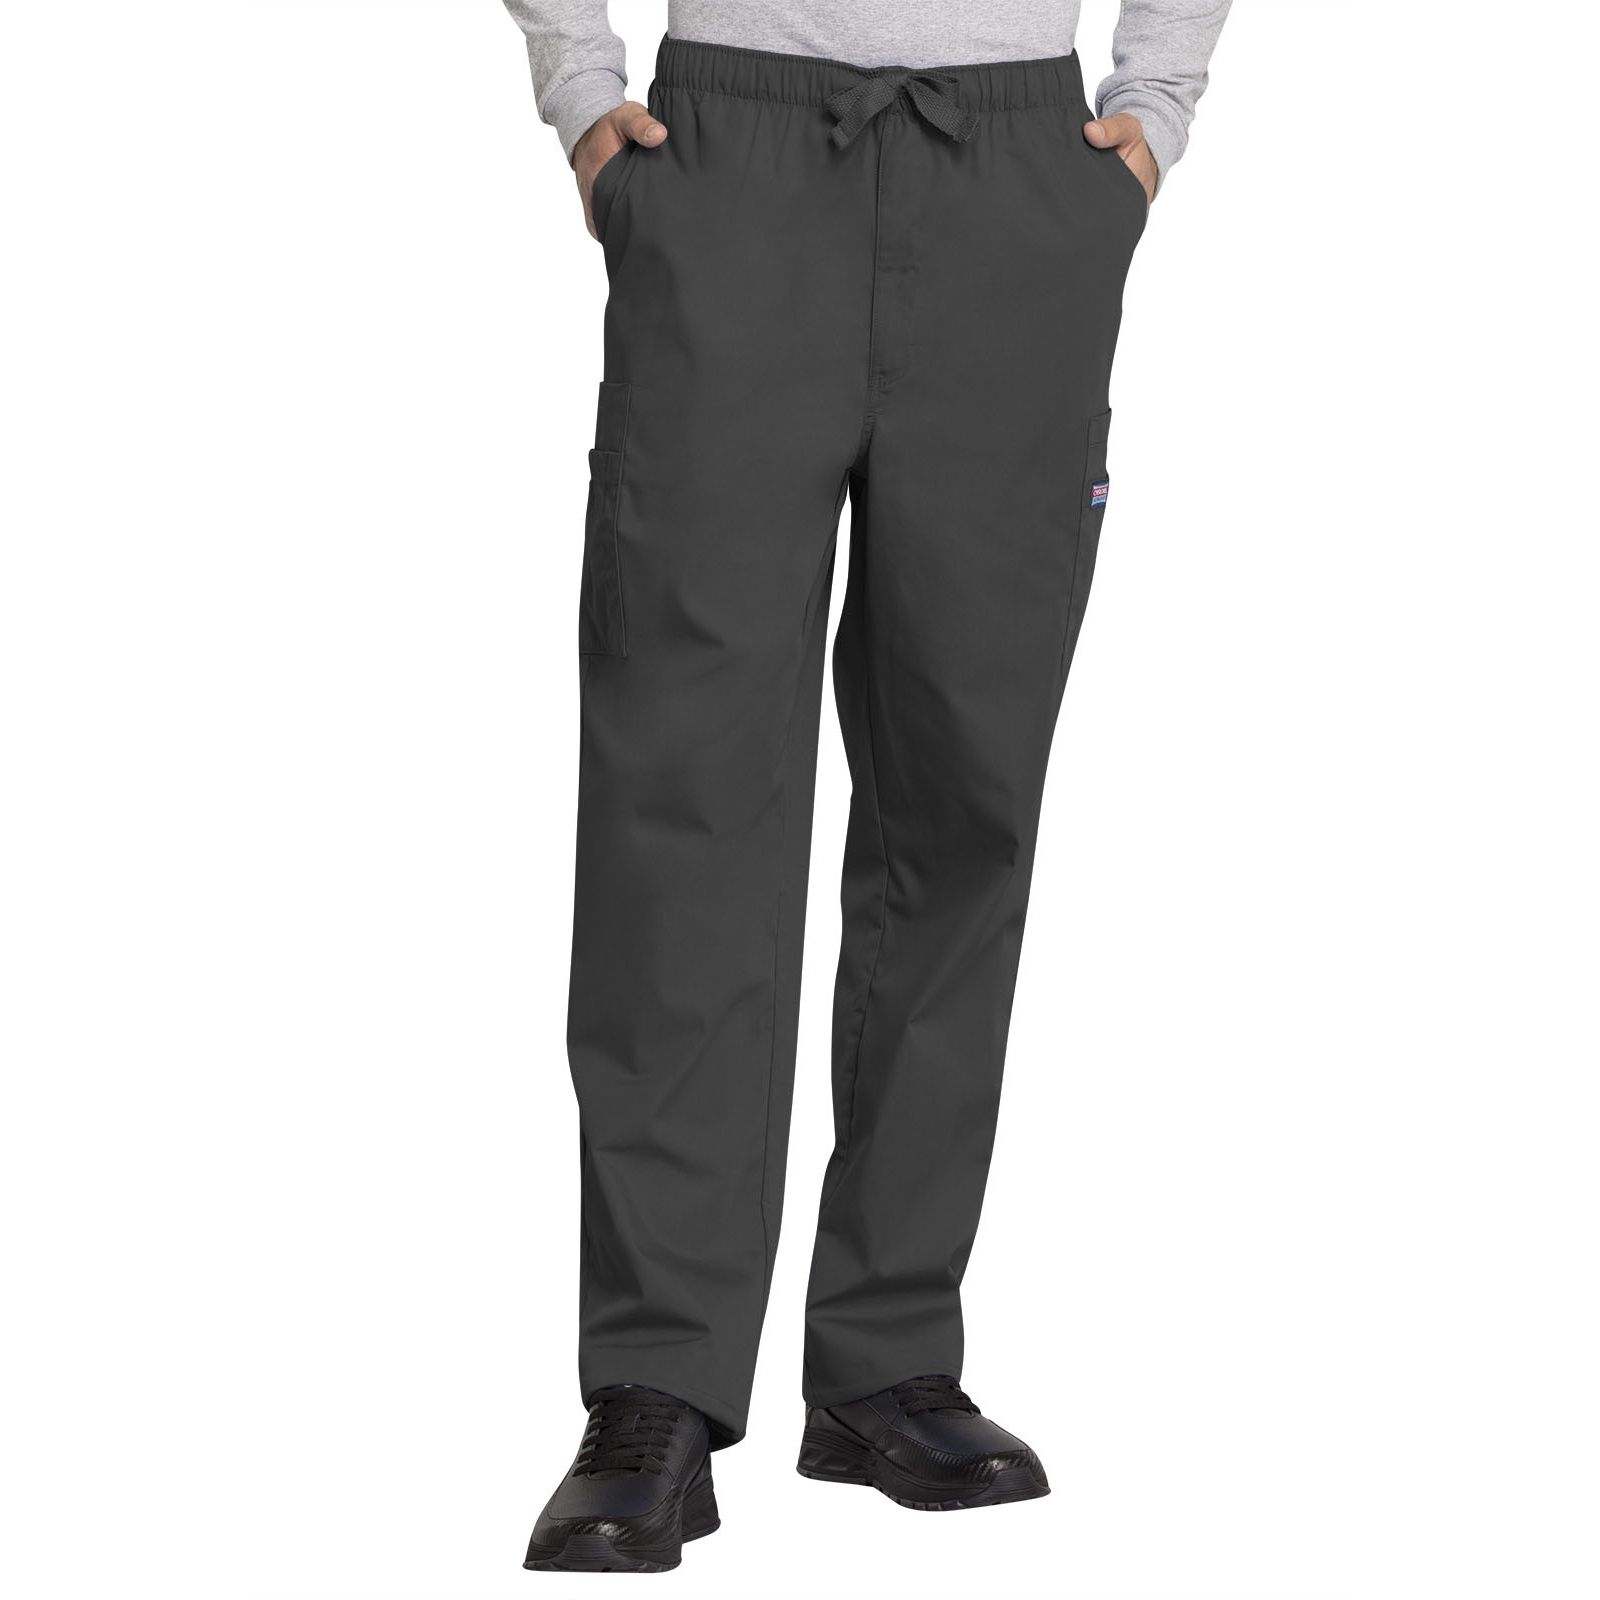 Pantalon médical cordon Homme, Cherokee Workwear Originals (4000) gris